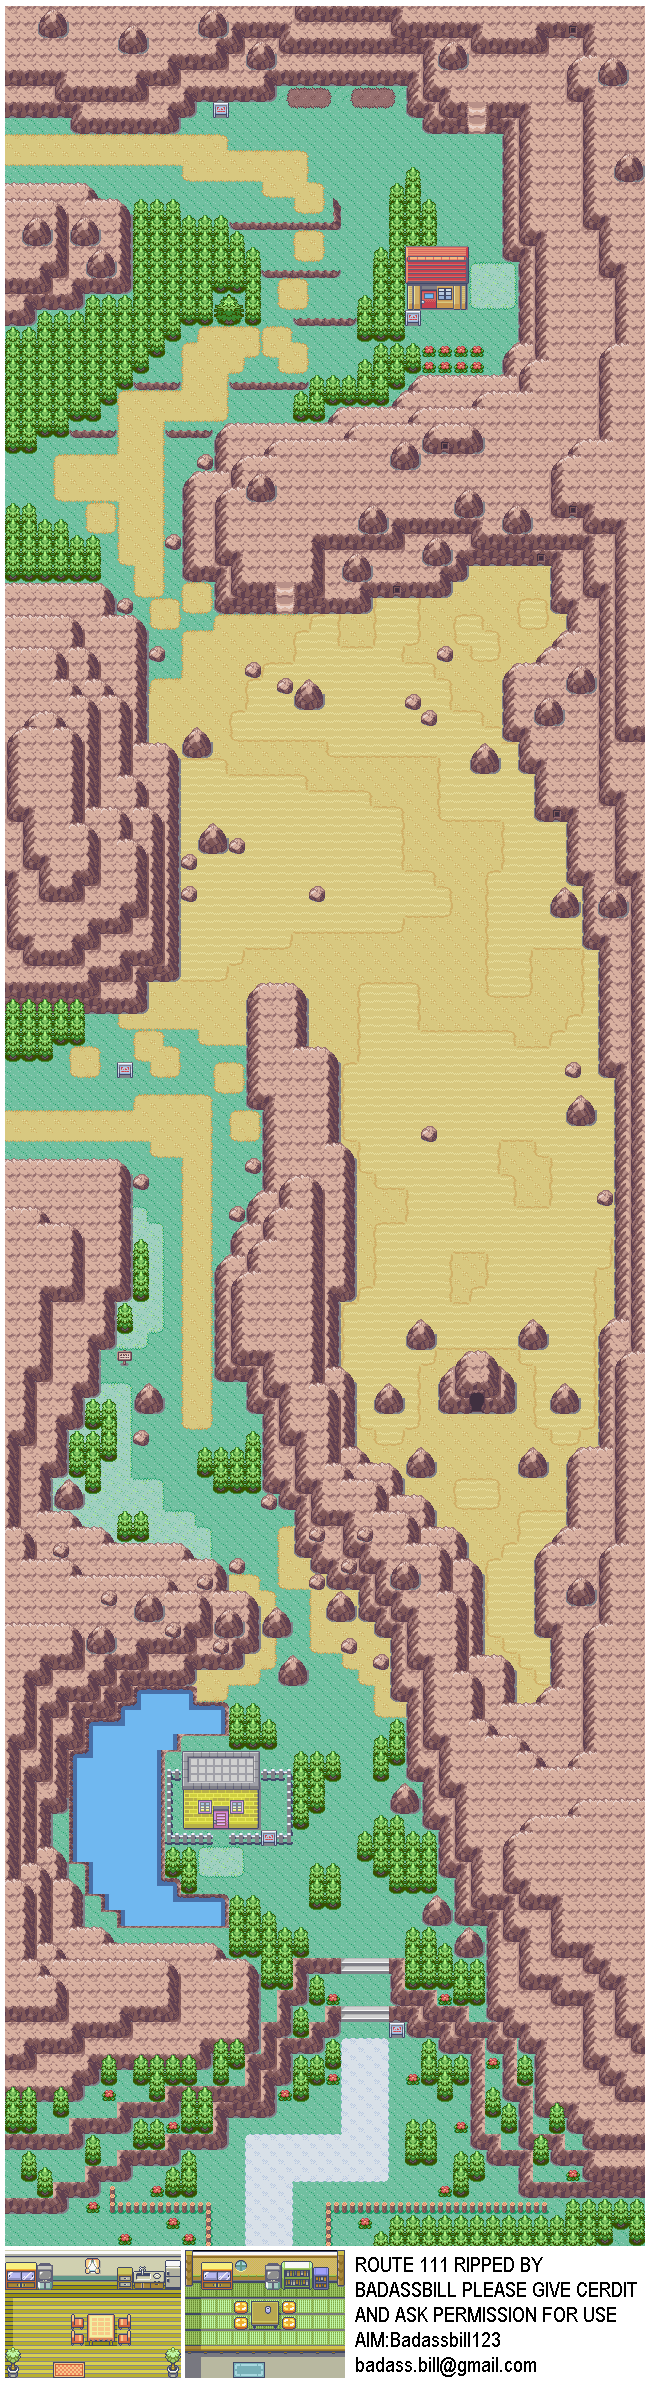 Route 111